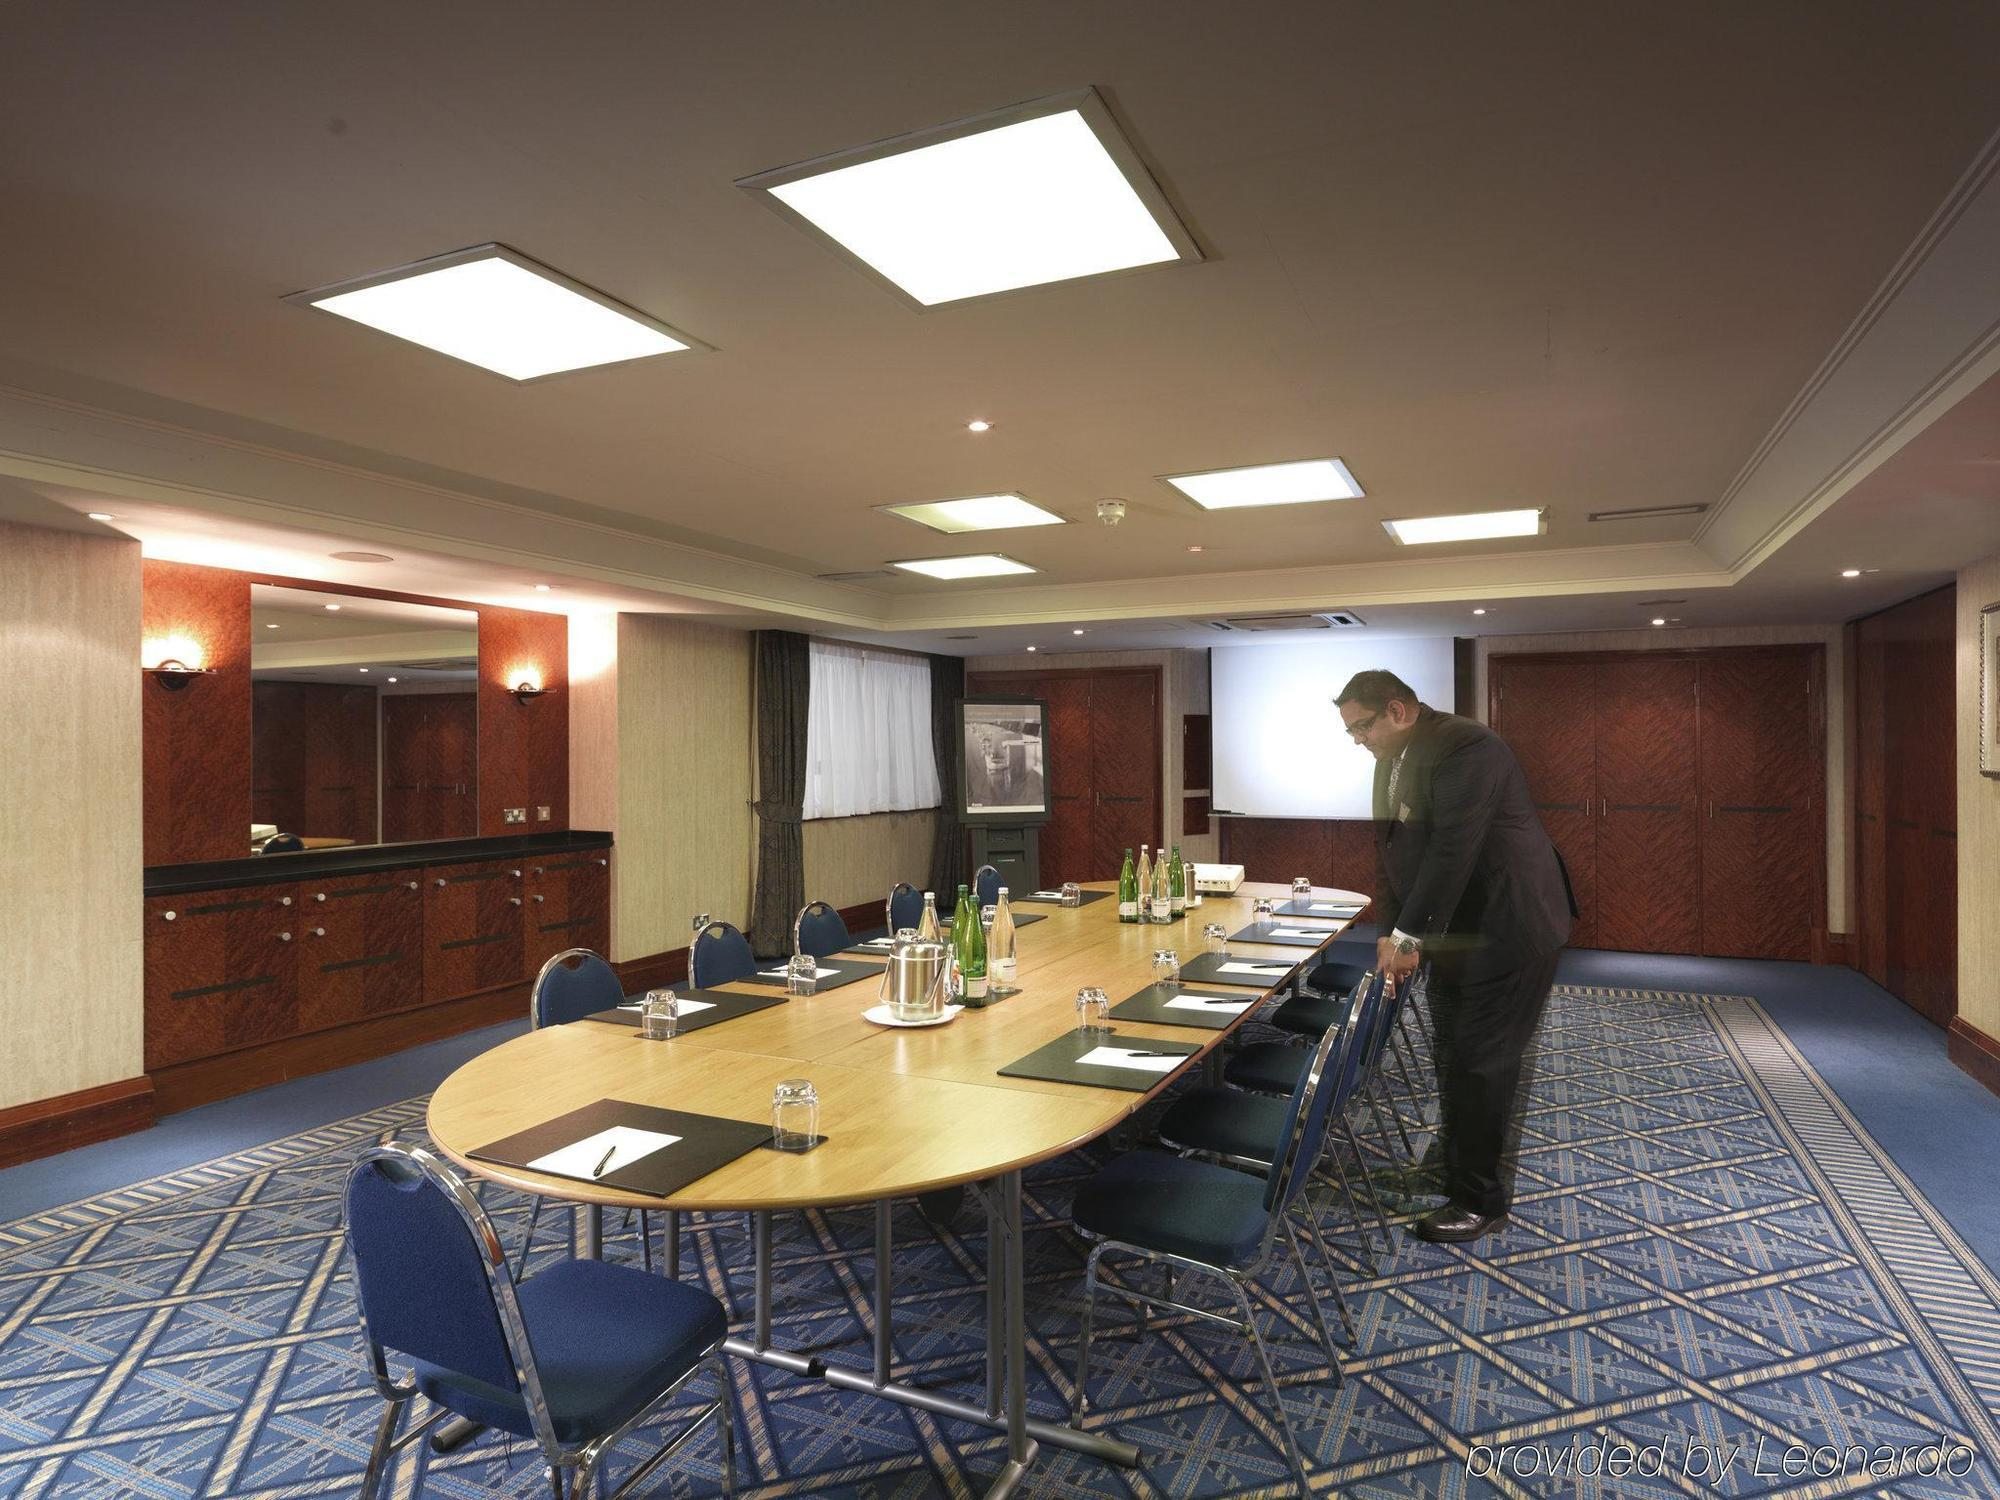 Conference room hire has never been easier than with us